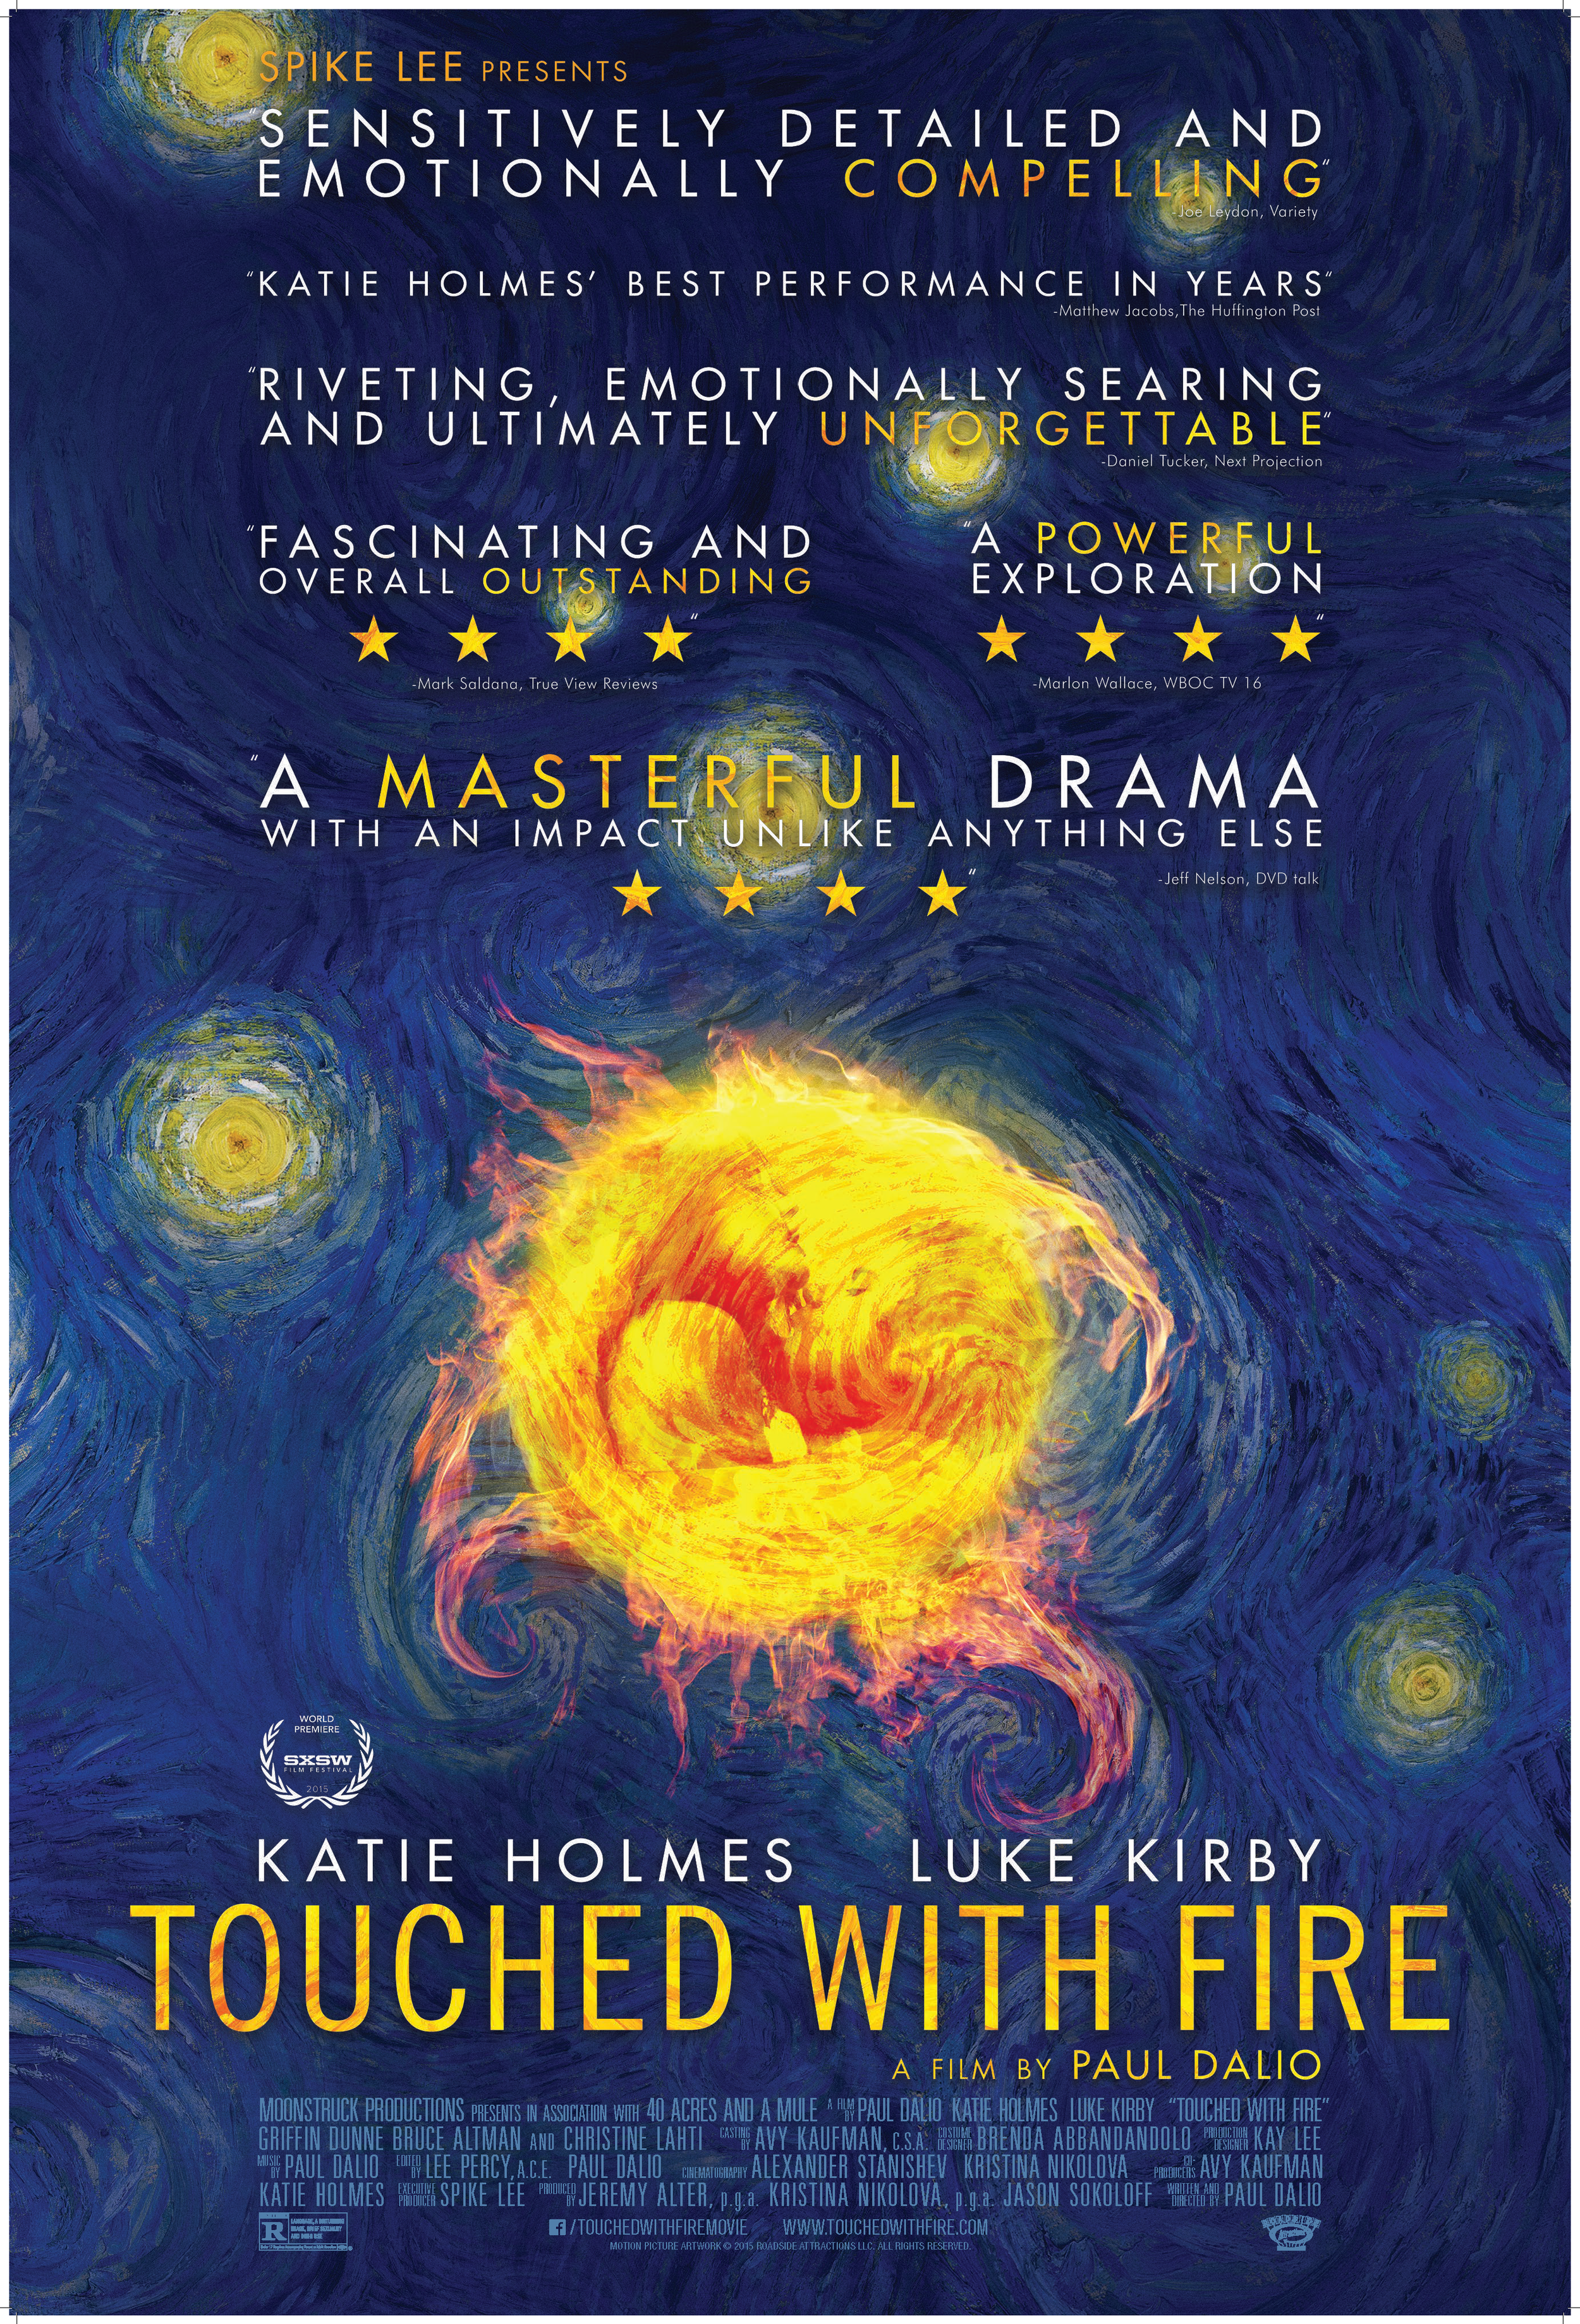 Touched with Fire  promotional poster. Courtesy of Moonstruck Productions.